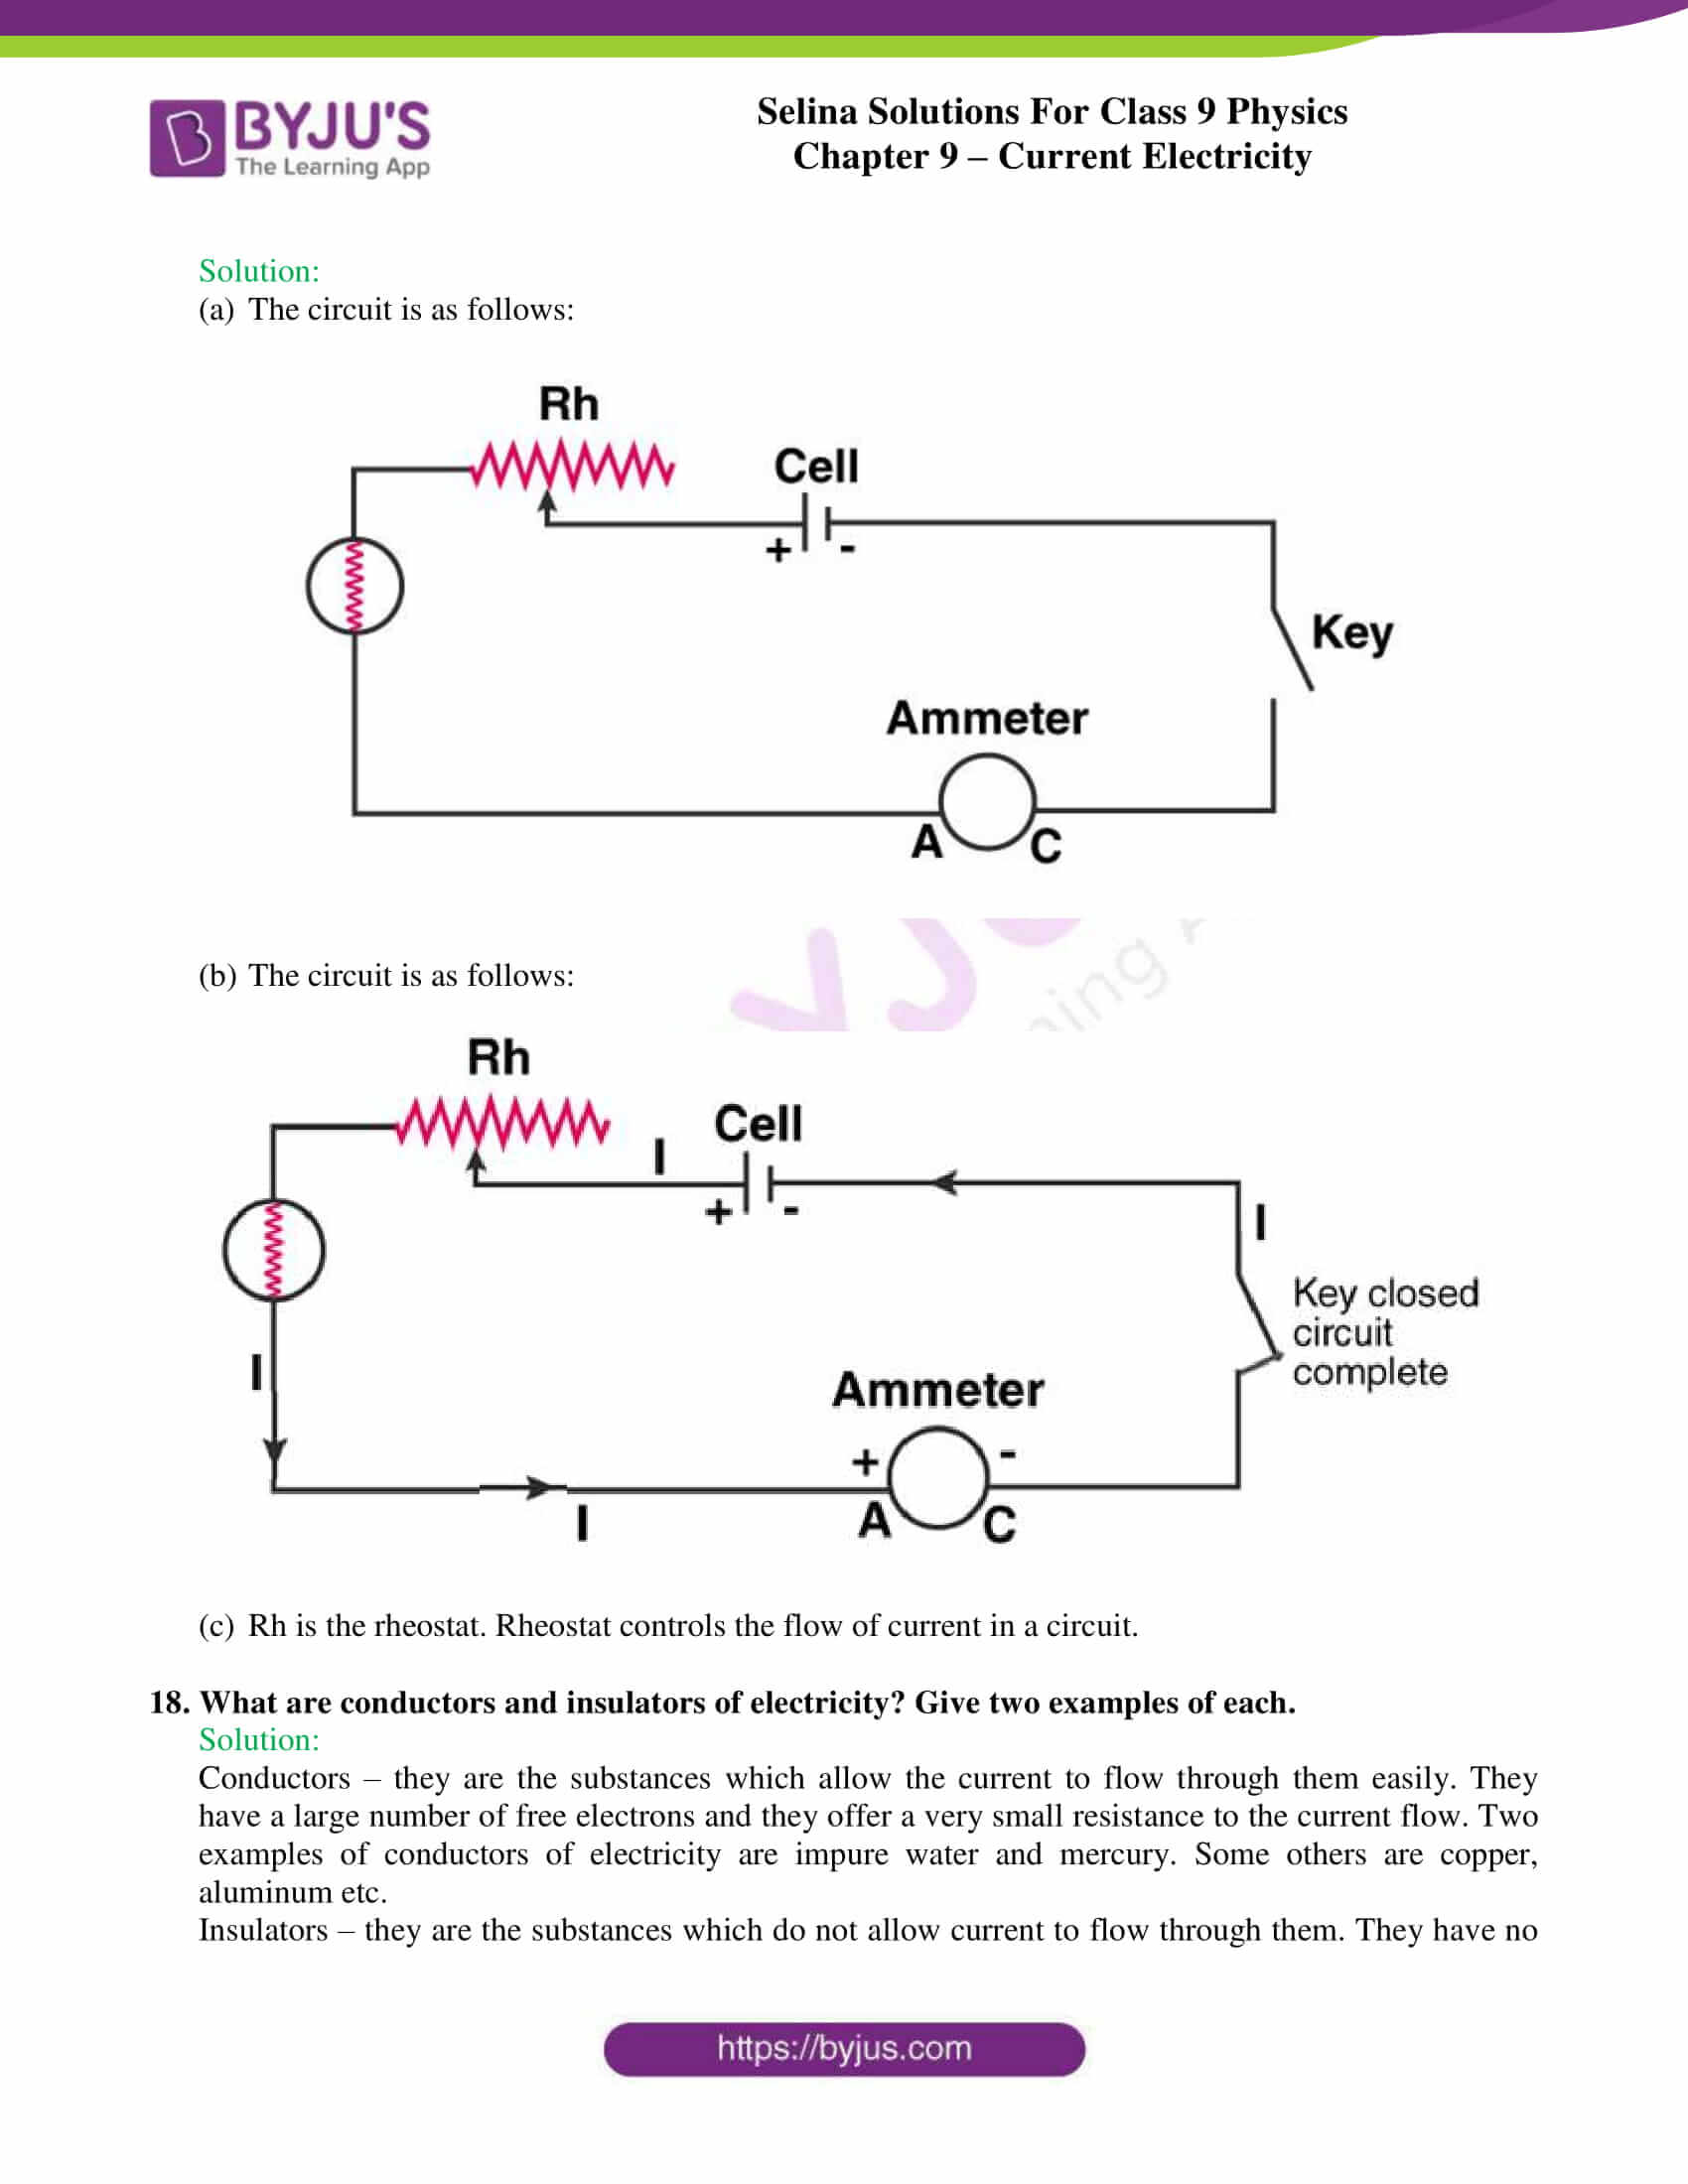 selina solutions class 9 physics chapter 9 Current Electricity part 05